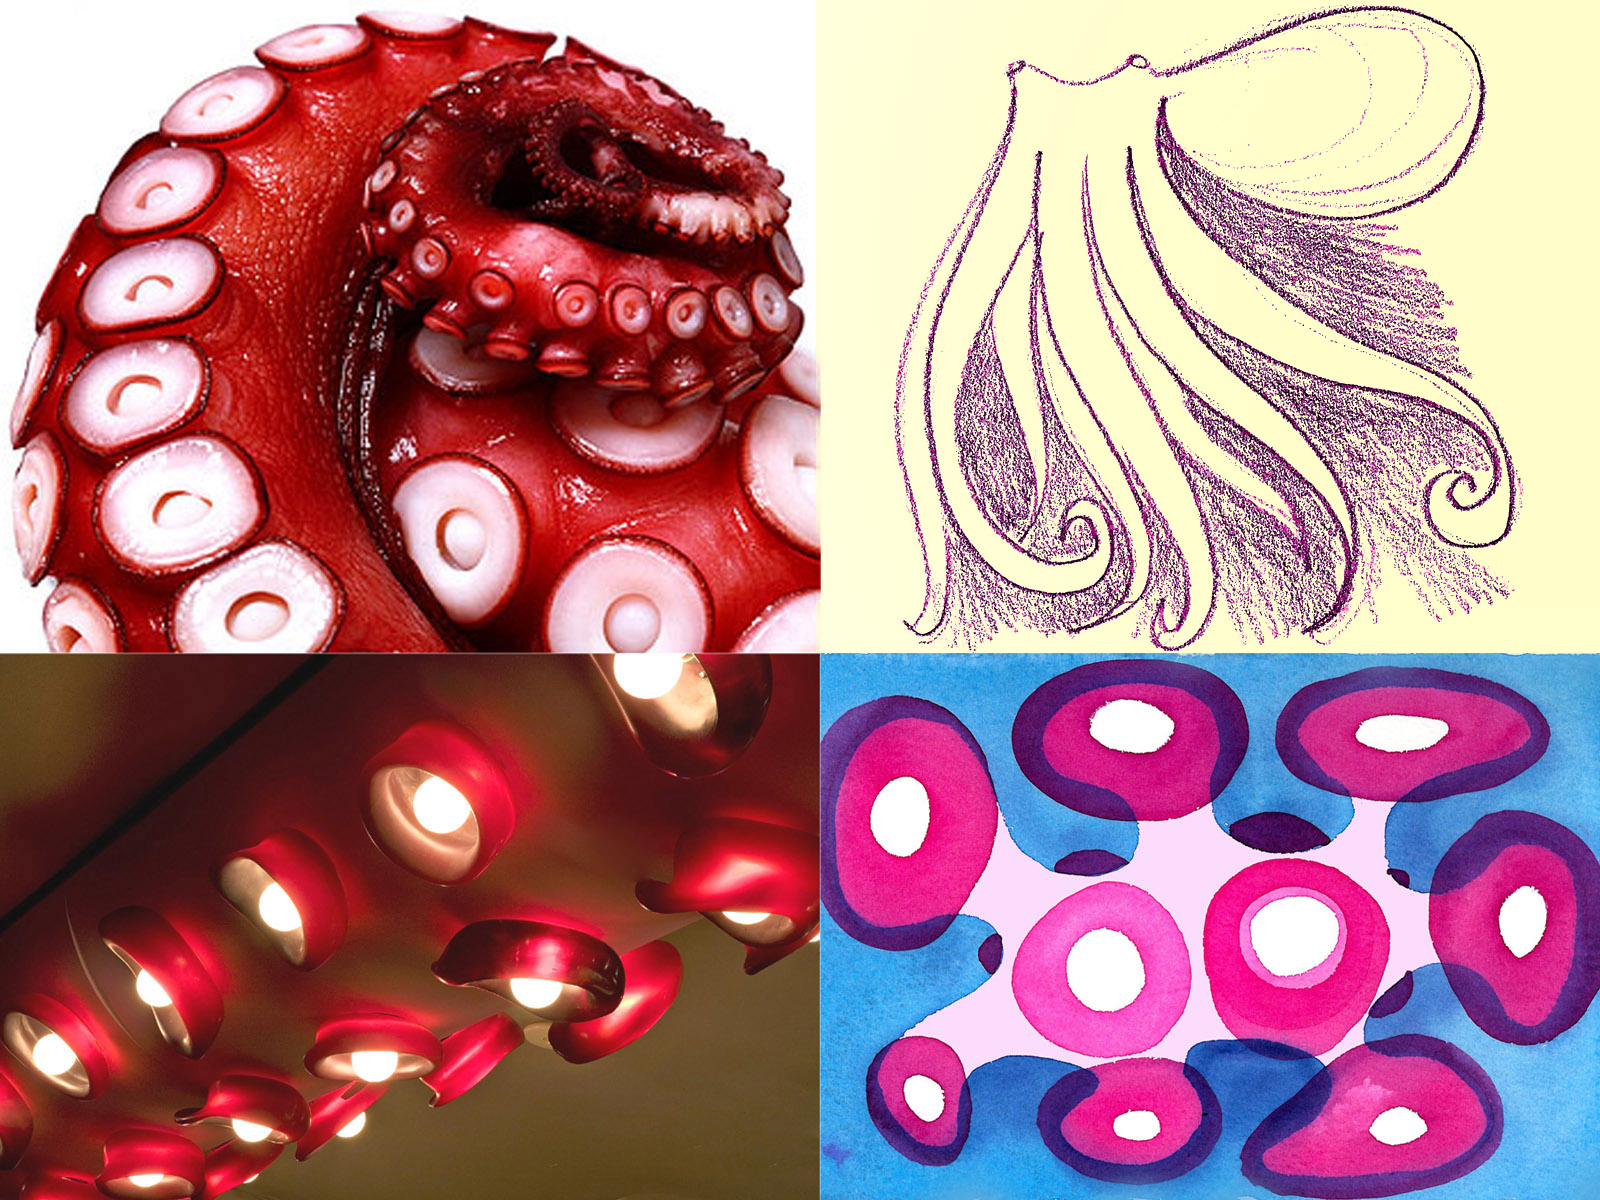 Octopus Chandelier and Studies